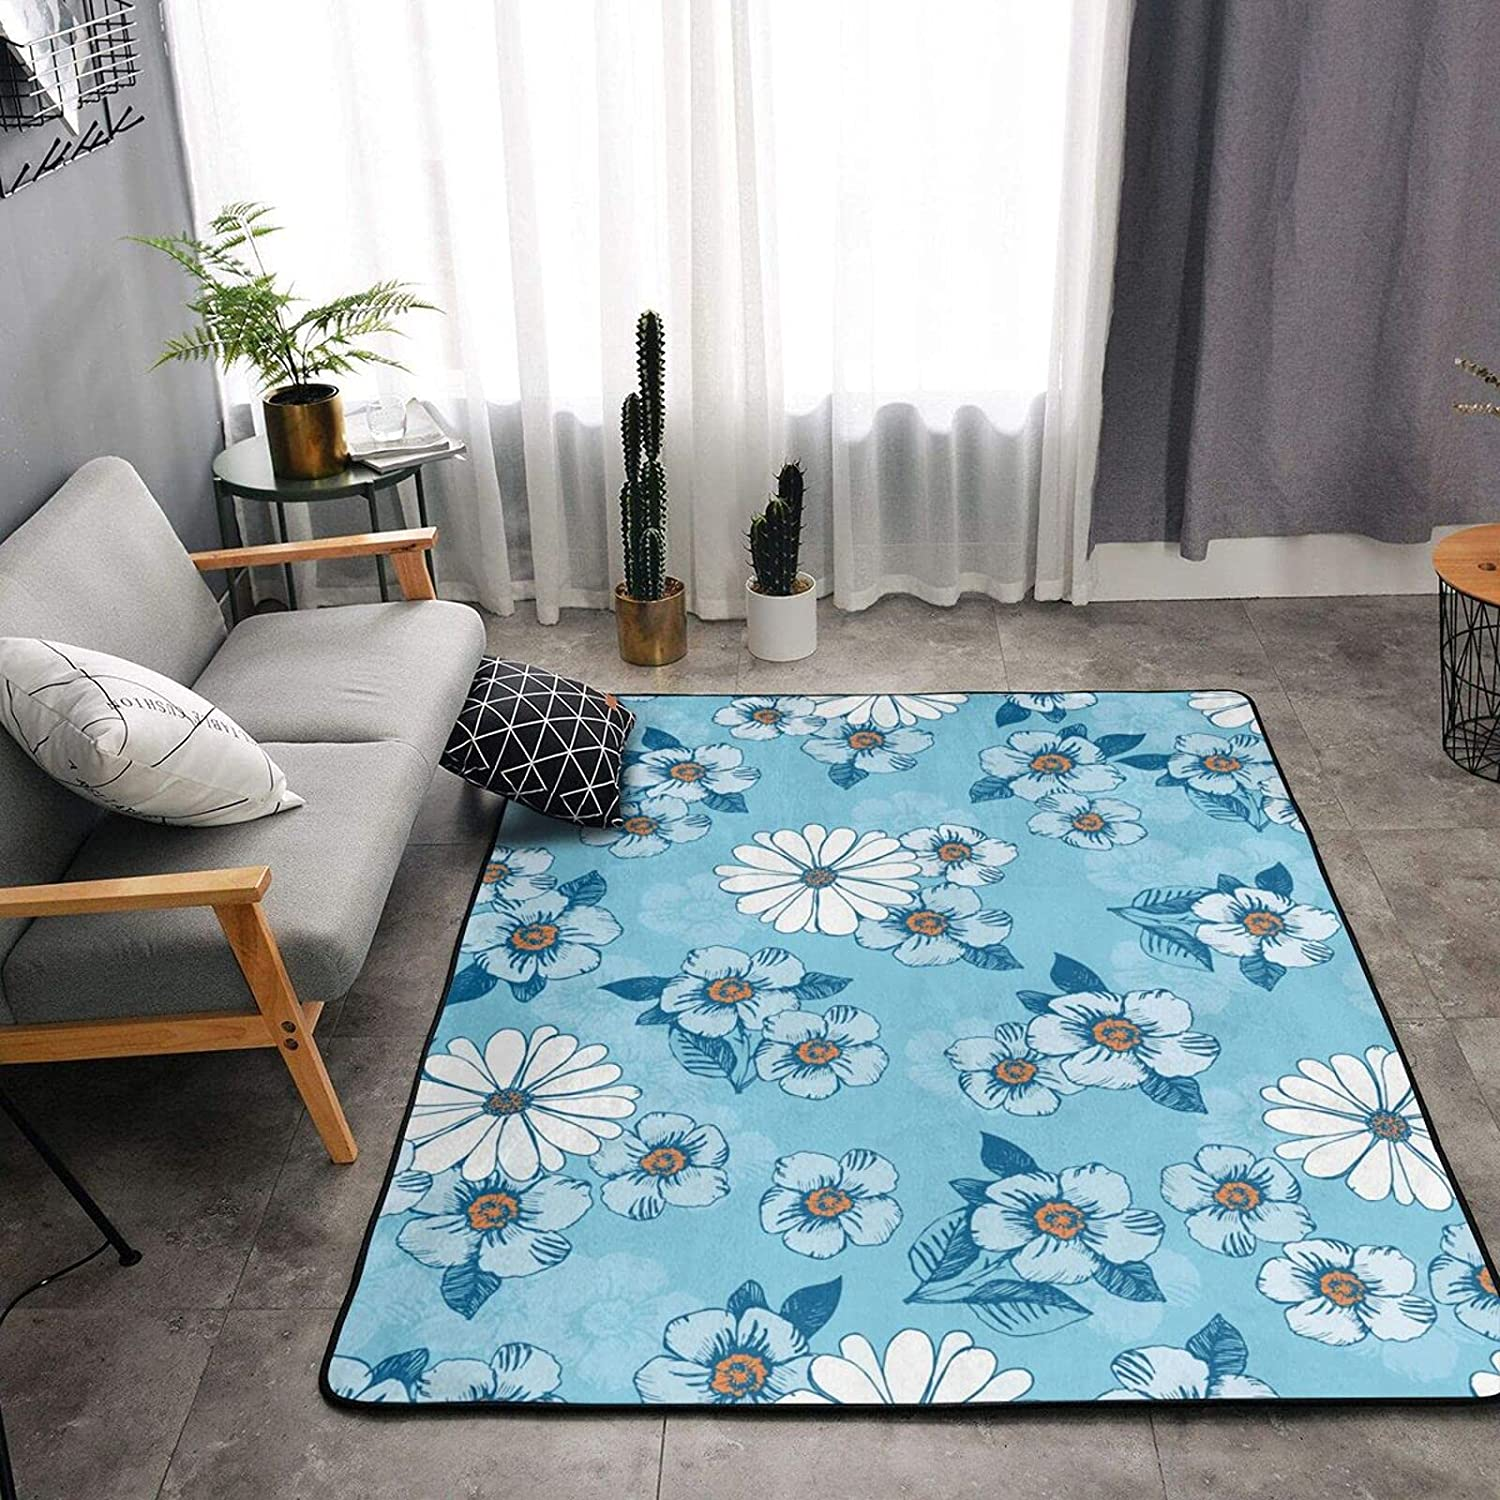 Blue Daisy Fort Worth Ranking TOP5 Mall Flower Soft Area Rugs Shaggy Room Living Bedroom for